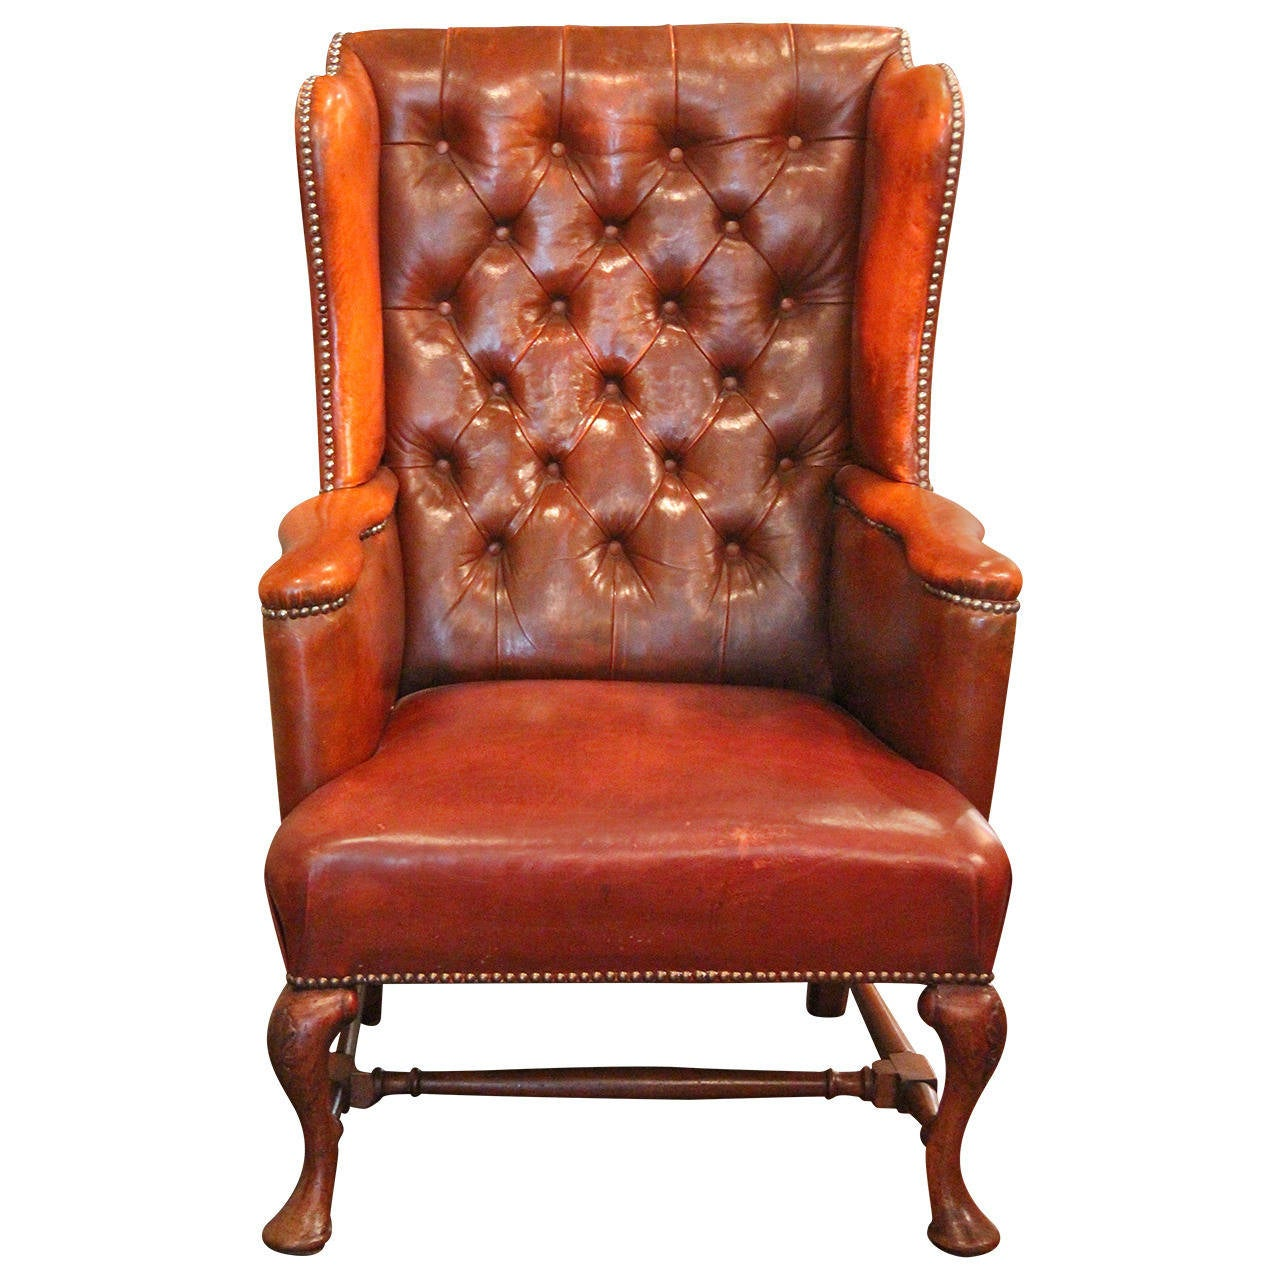 Leather Wing Back Chair Tufted Leather Wingback Chair At 1stdibs